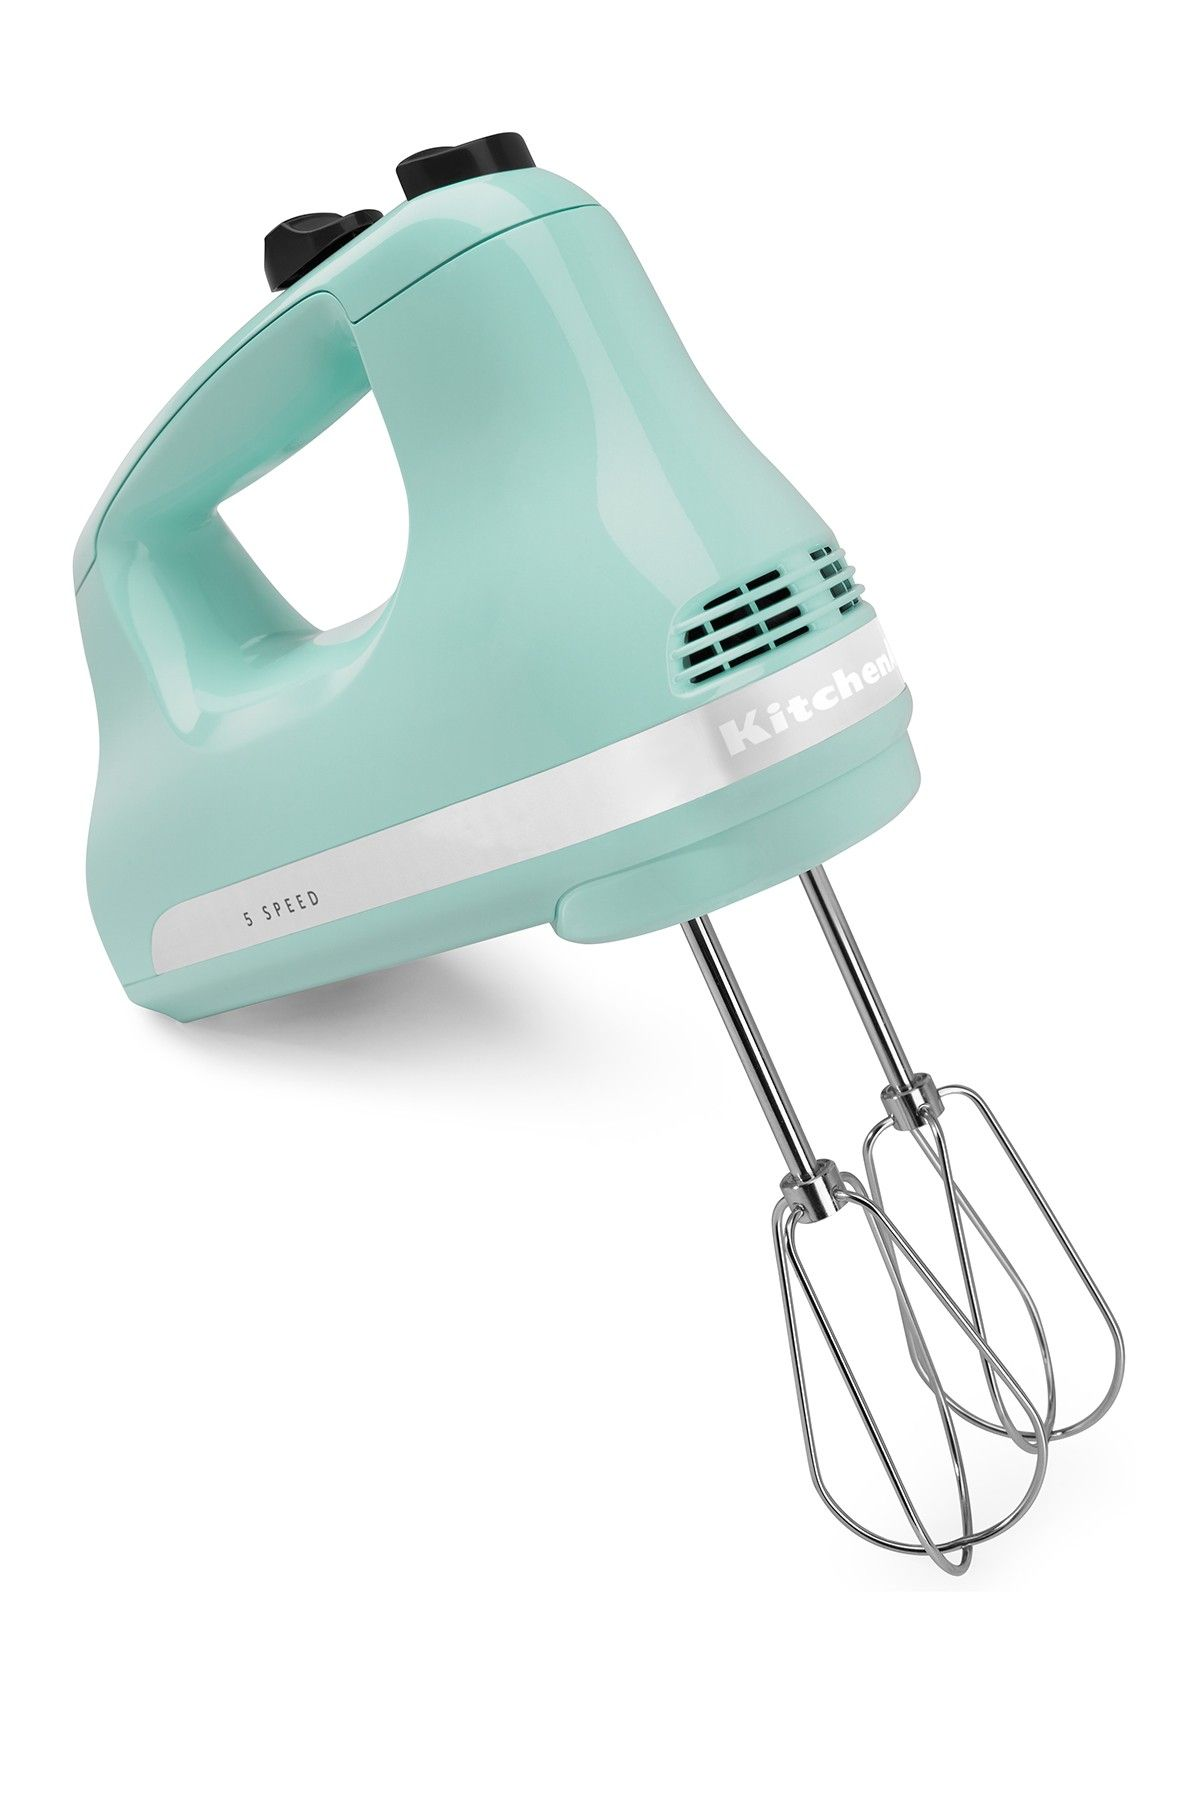 KitchenAid 5-Speed Hand Mixer - Ice Blue | Hand mixer and Products